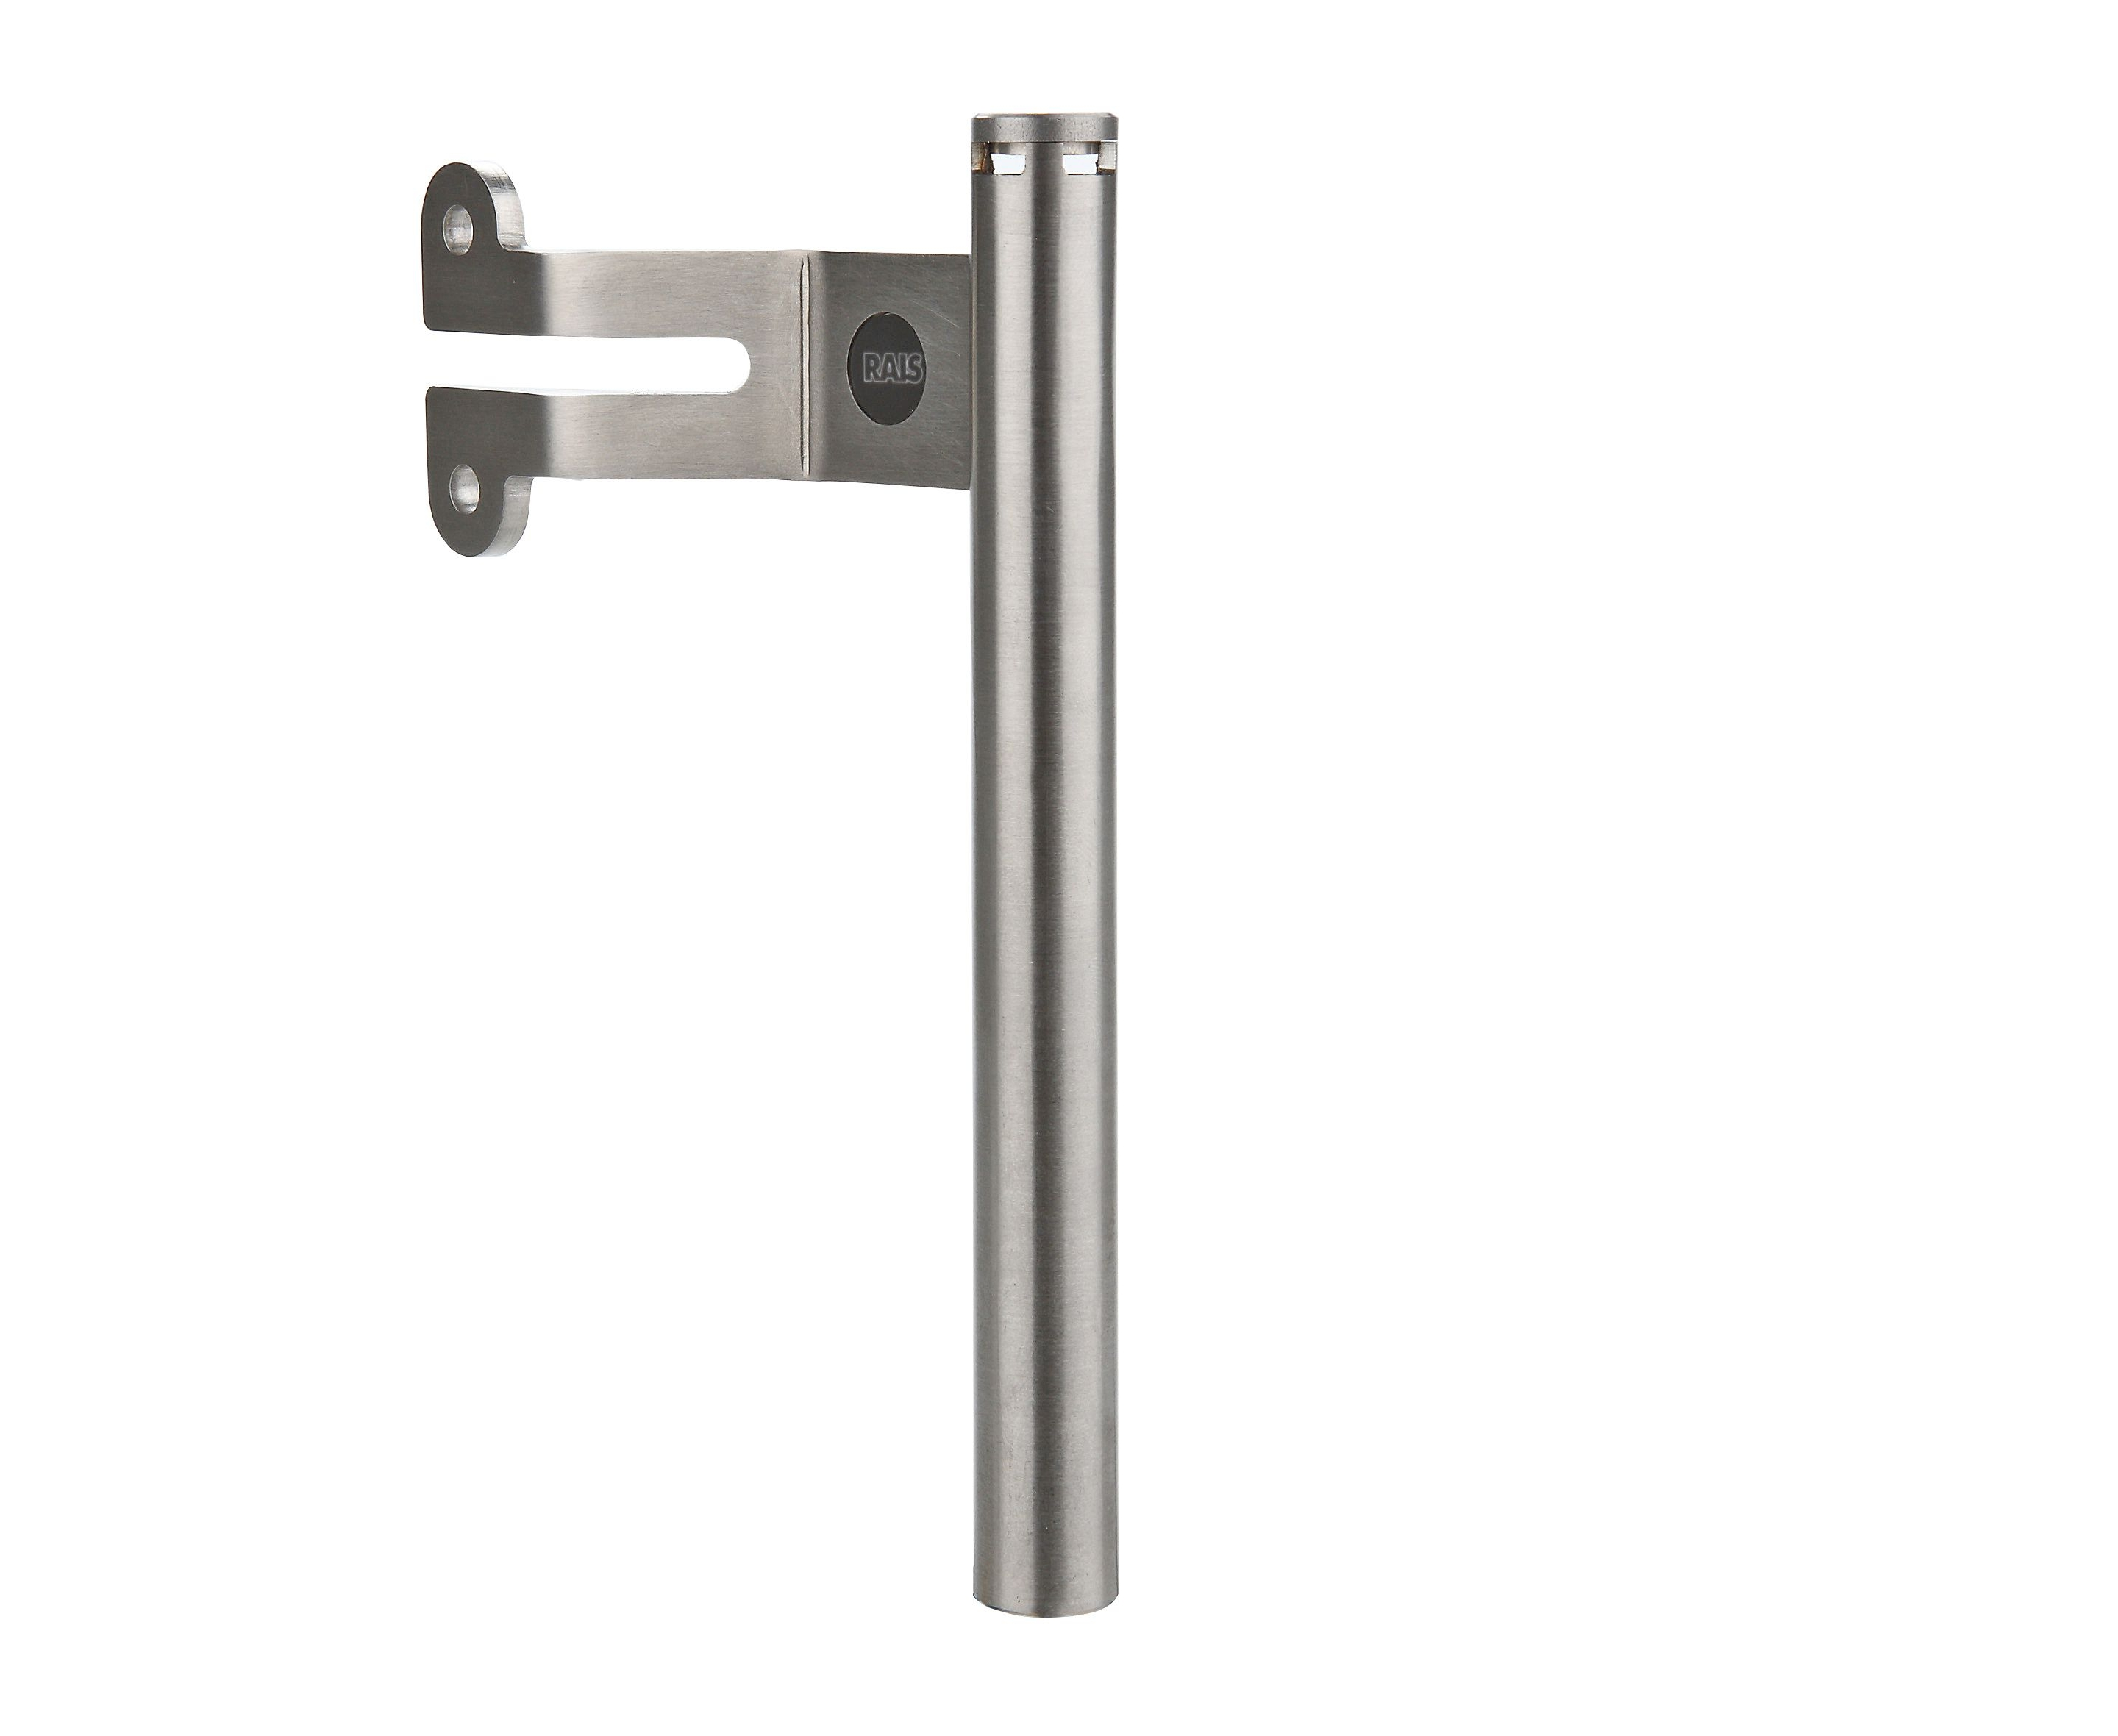 Optional Stainless Steel Handle